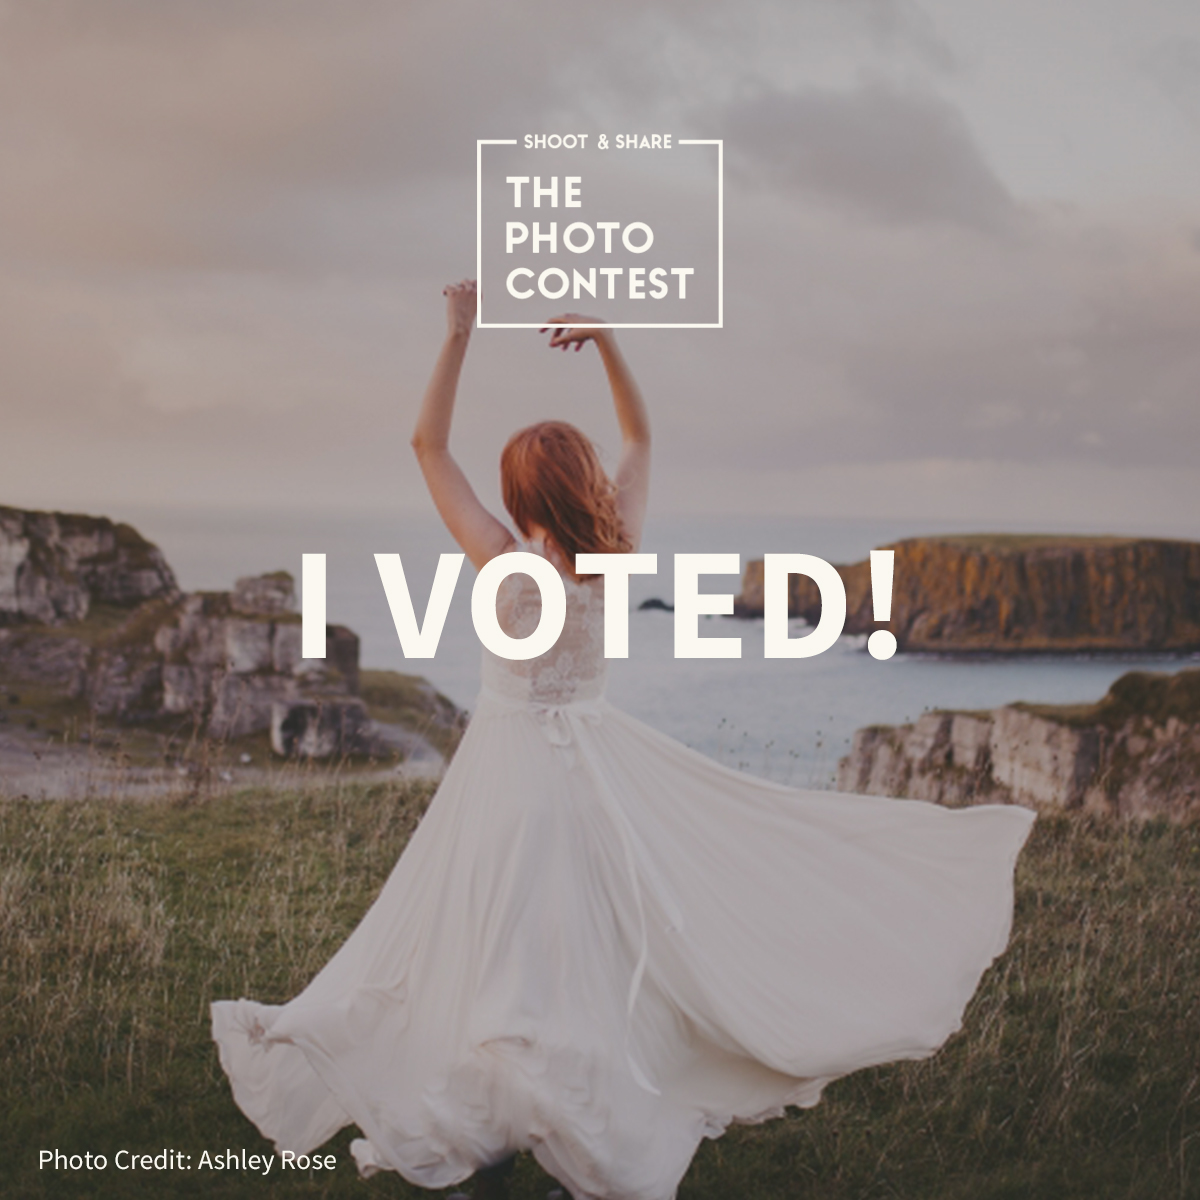 PC2017-Insta-I-Voted-4.jpg